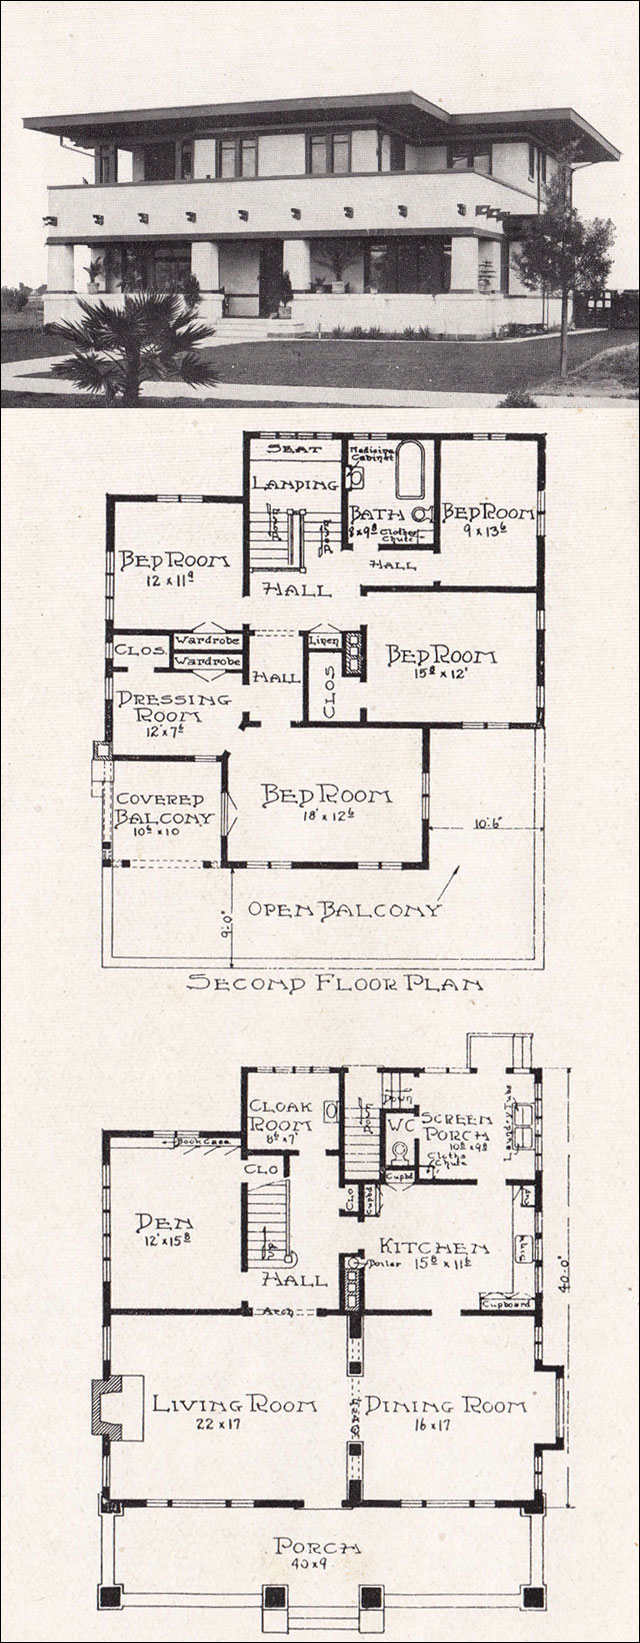 charming prairie school house plans images best ForPrairie School House Plans